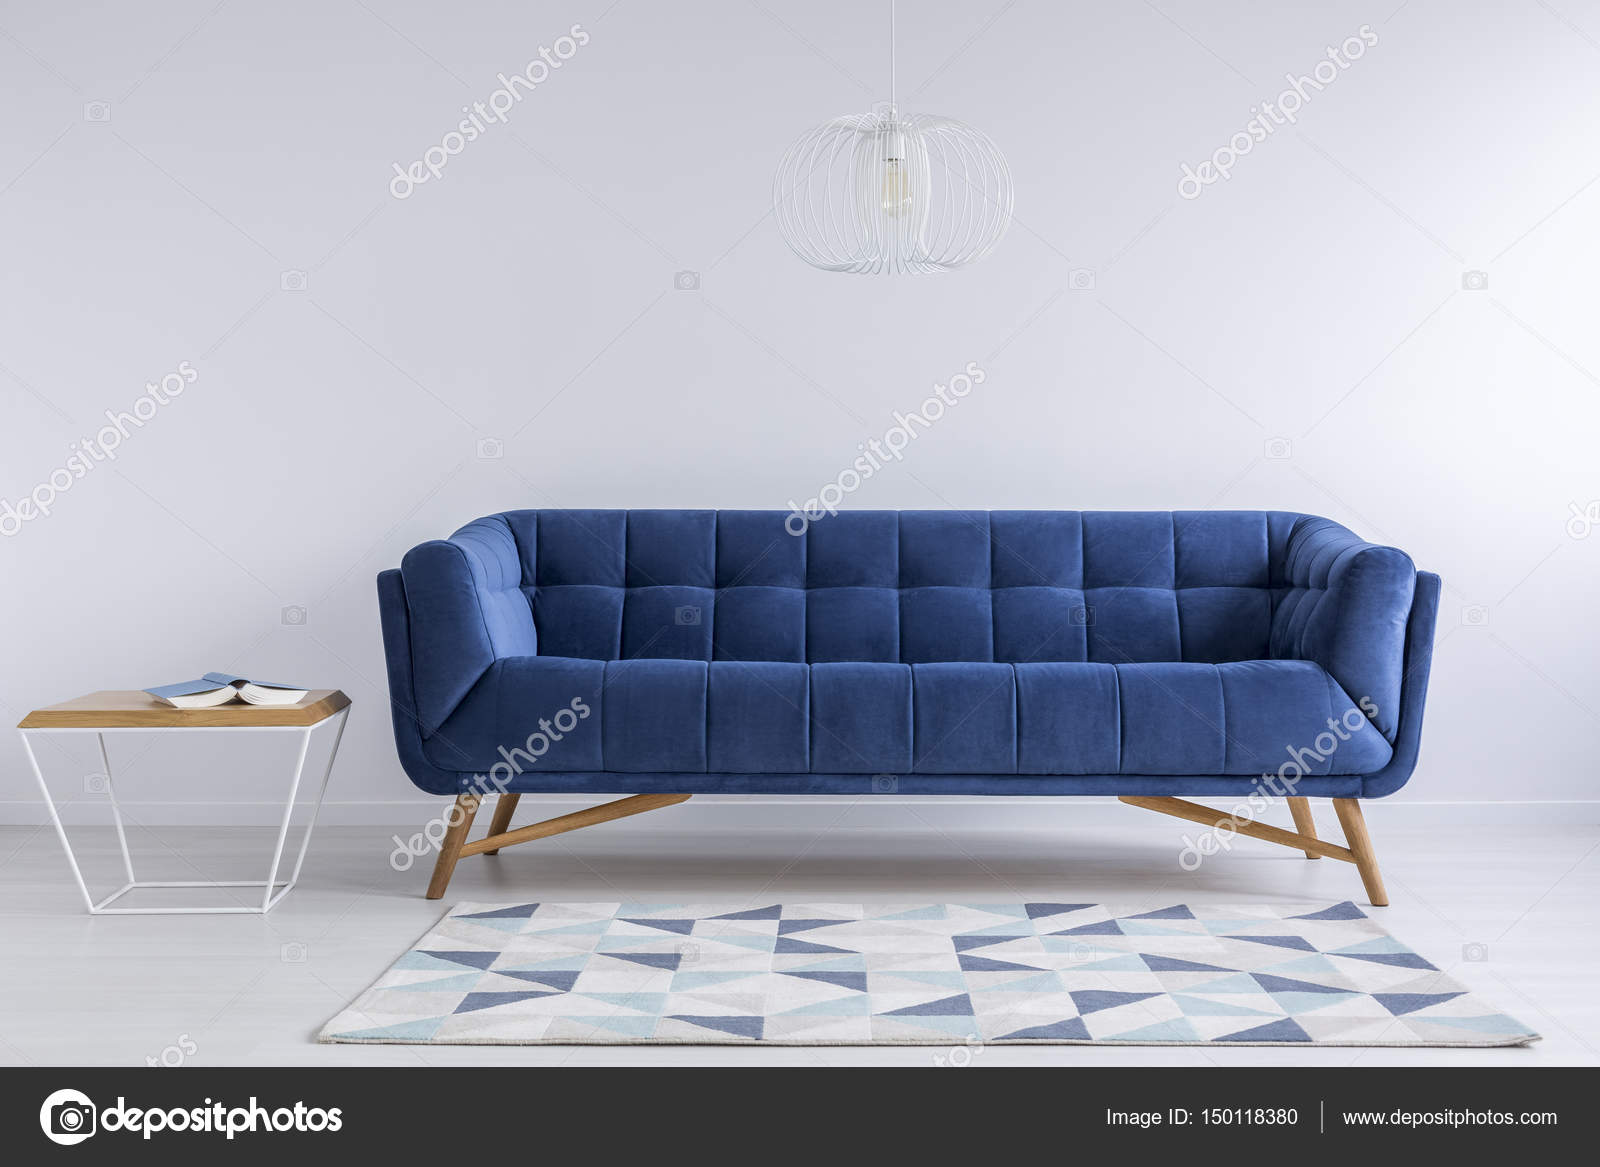 Die Blaue Couch Bequeme Blaue Couch Stockfoto Photographee Eu 150118380